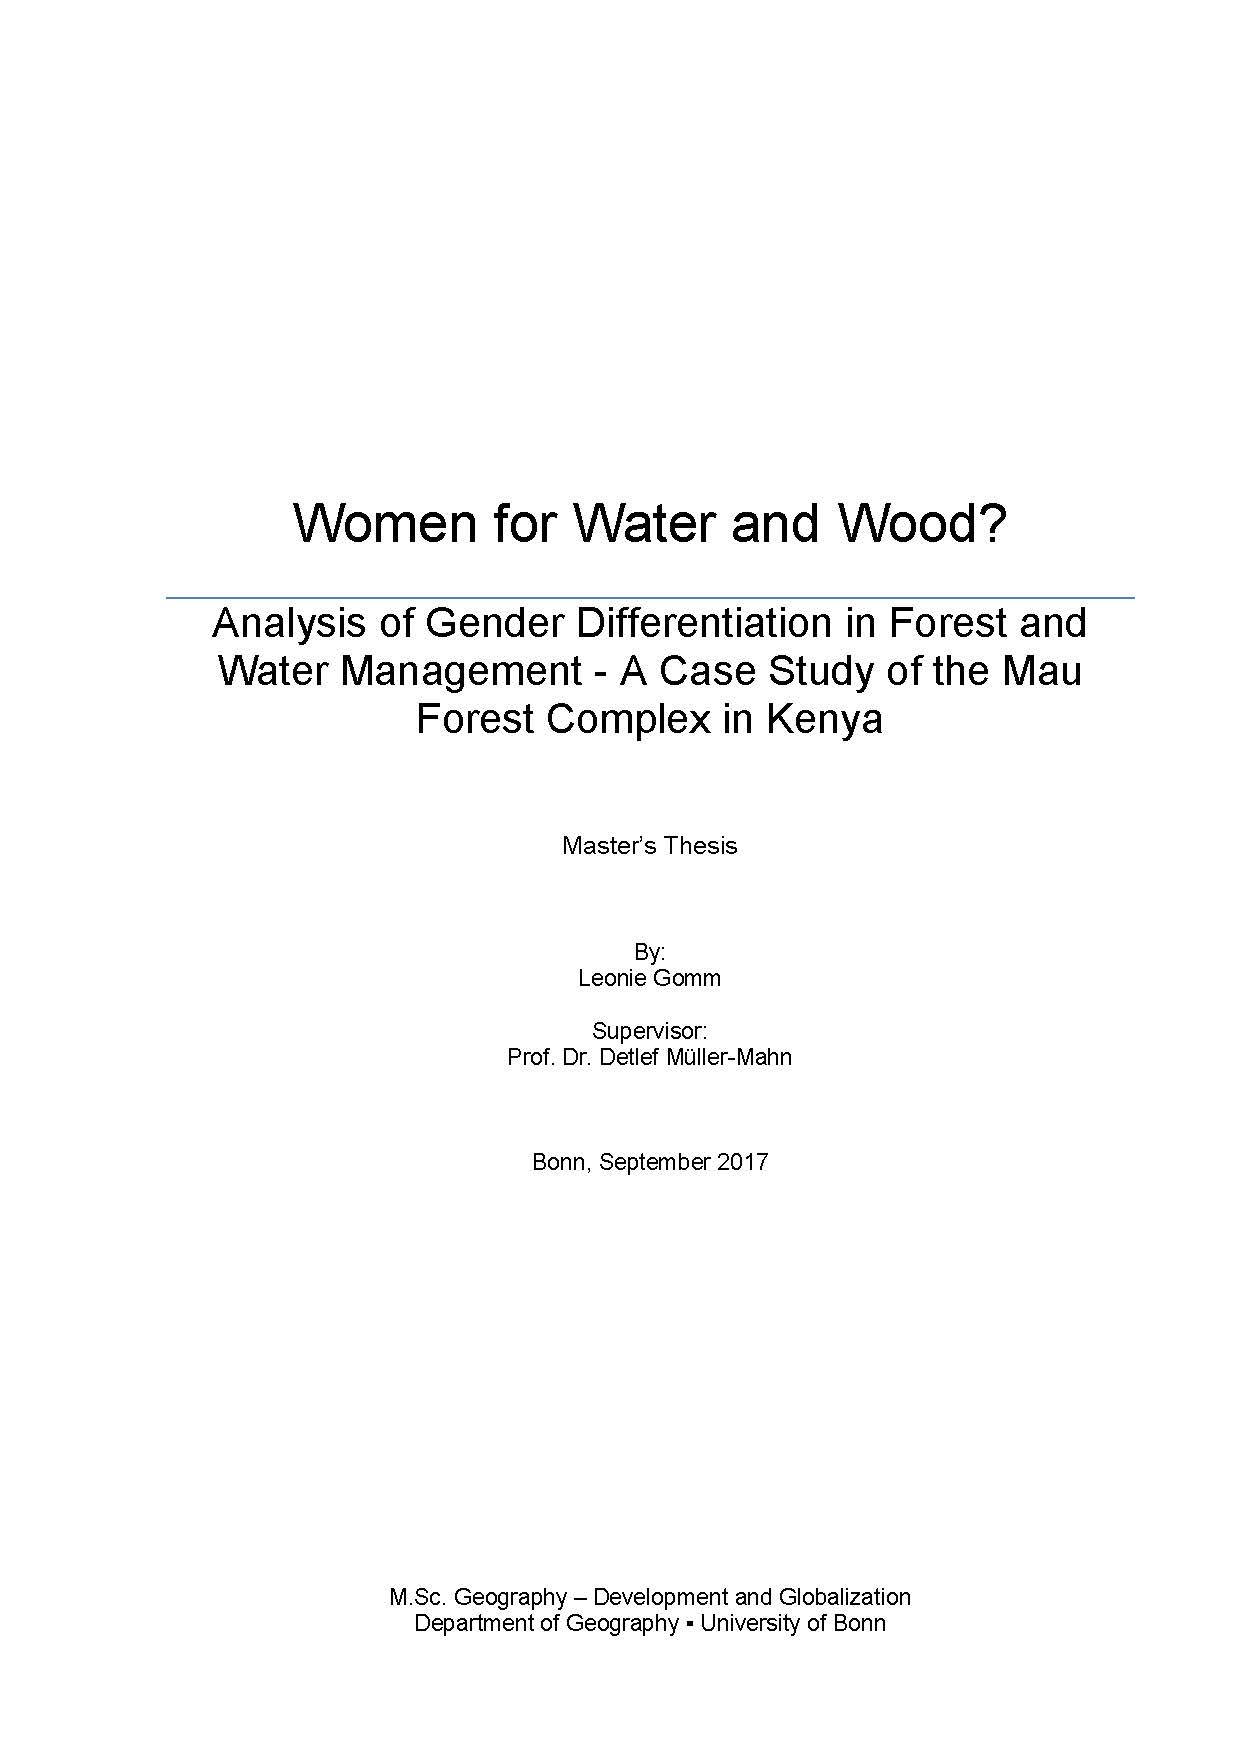 Women for Water and Wood?: Analysis of Gender Differentiation in Forest and Water Management - A Case Study of the Mau Forest Complex in Kenya